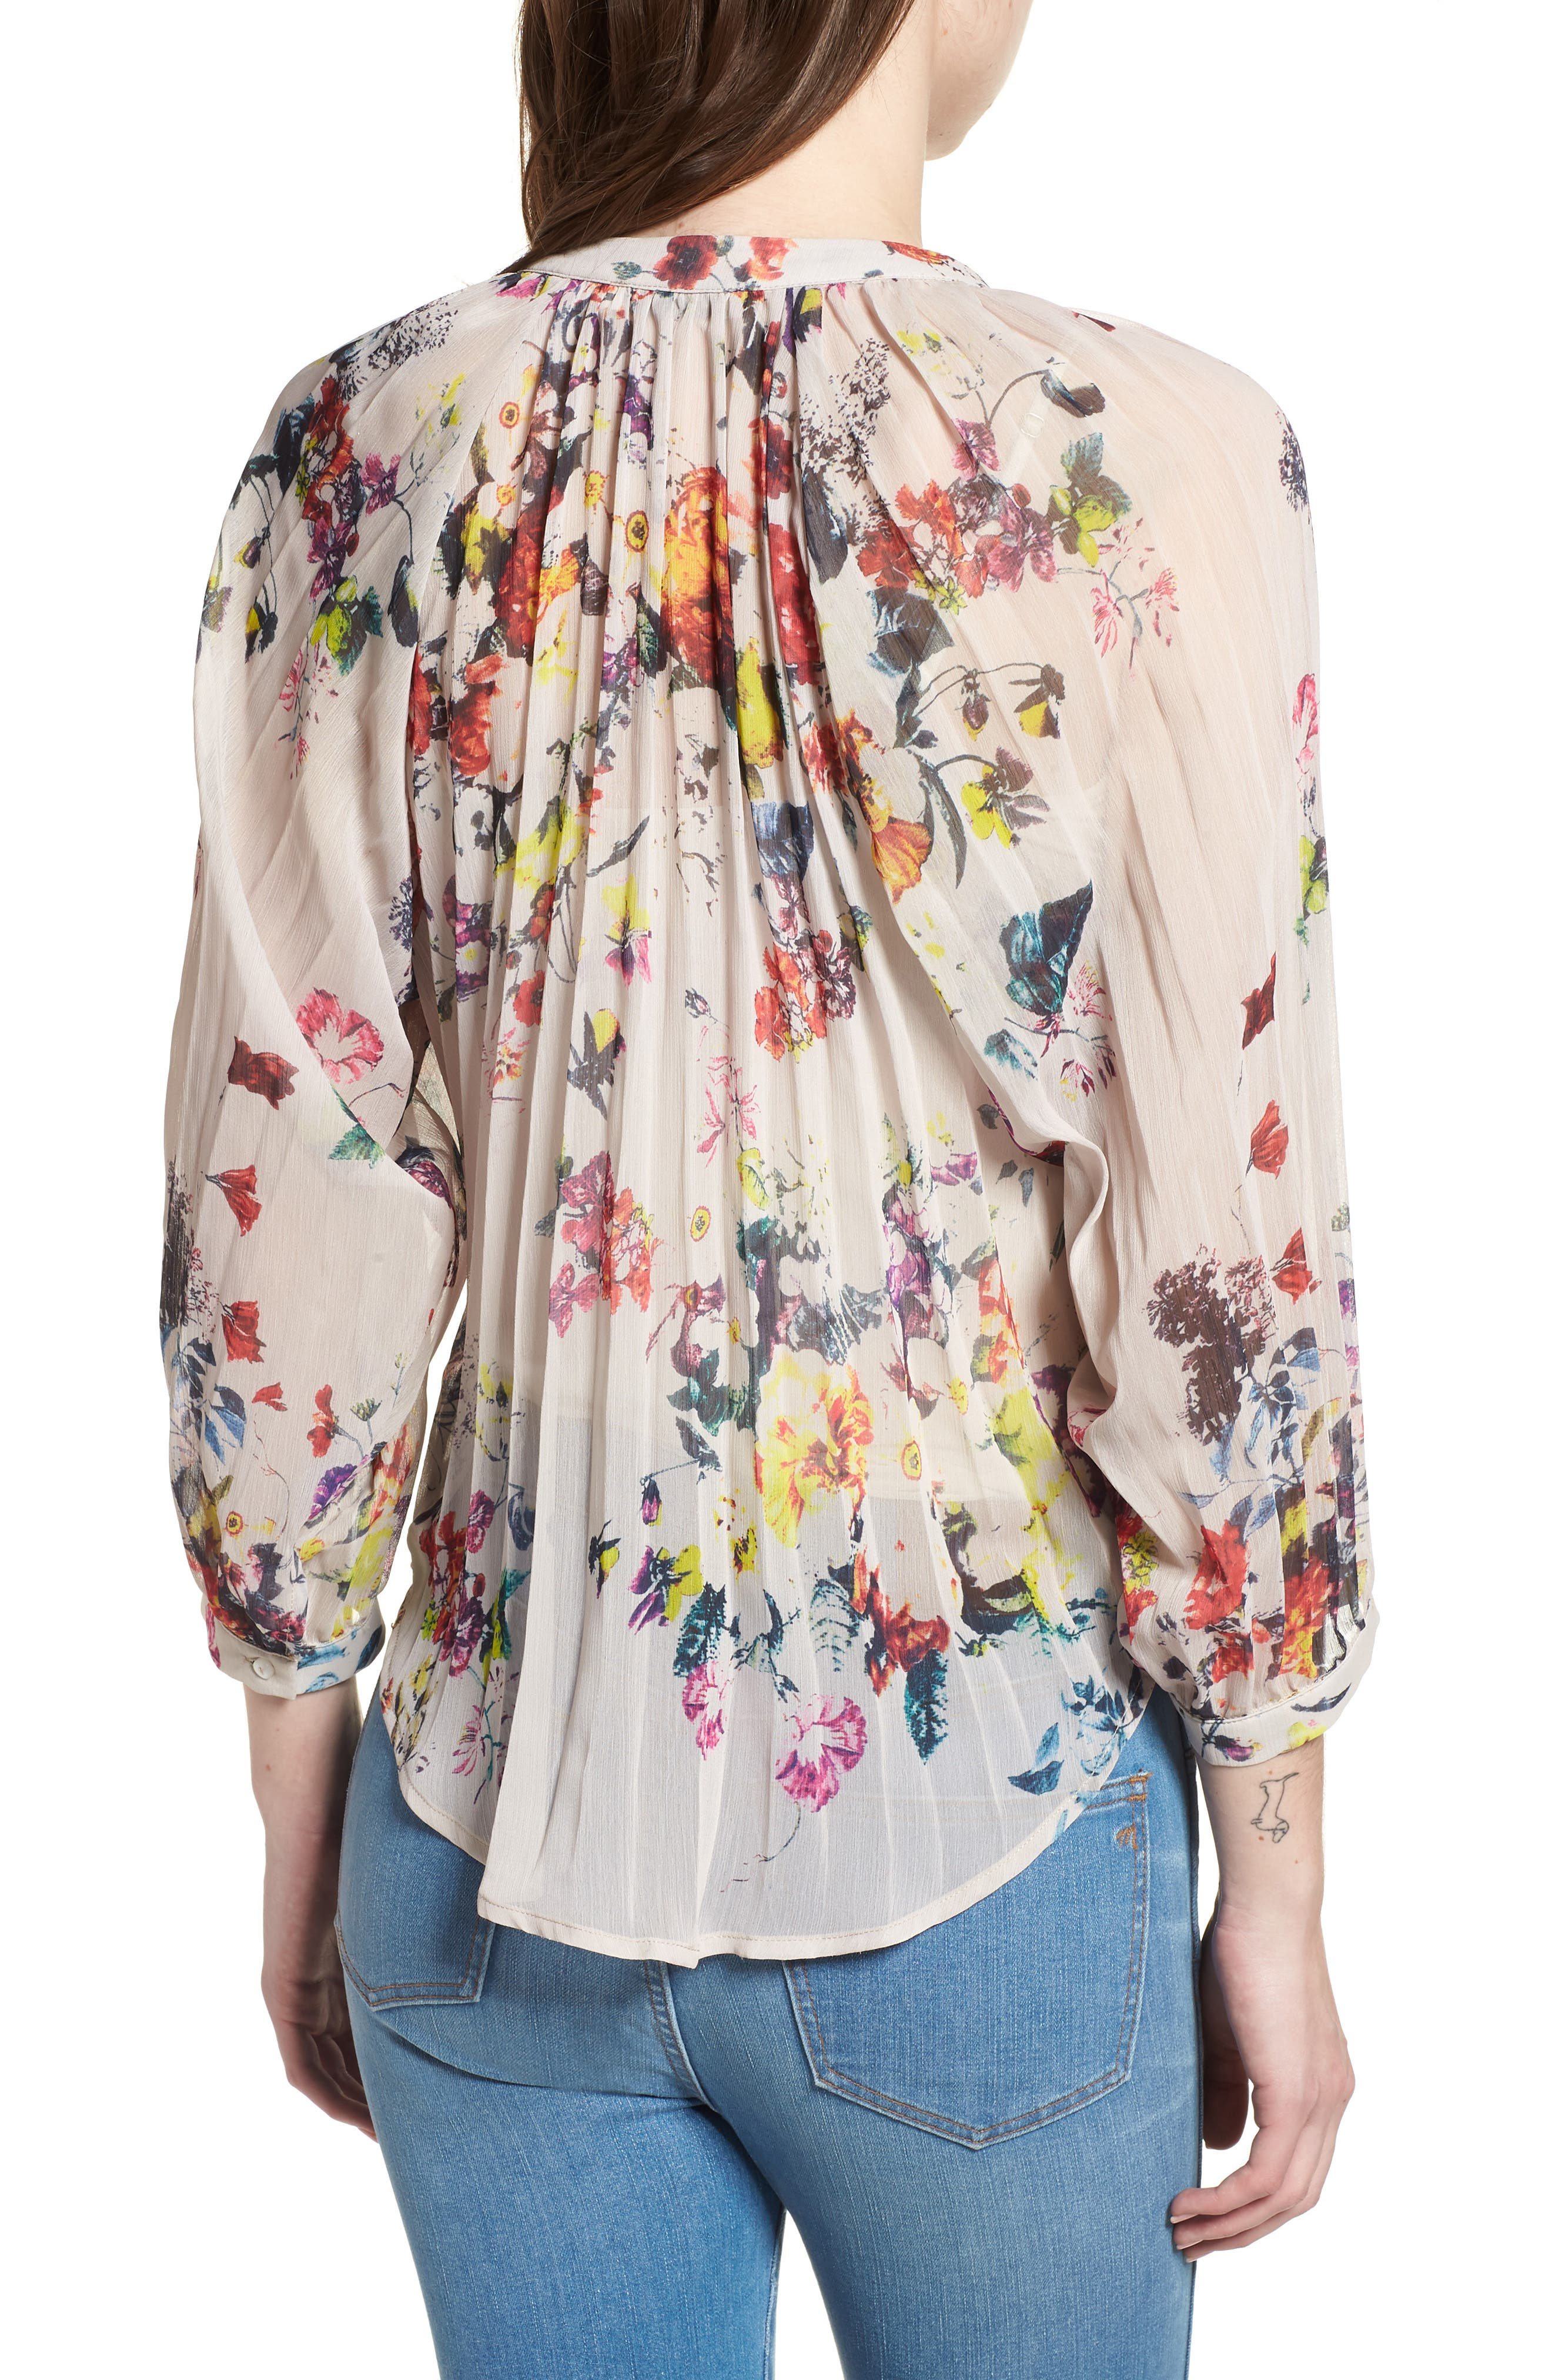 Bishop + Young Floral Pleated Top,                             Alternate thumbnail 2, color,                             900